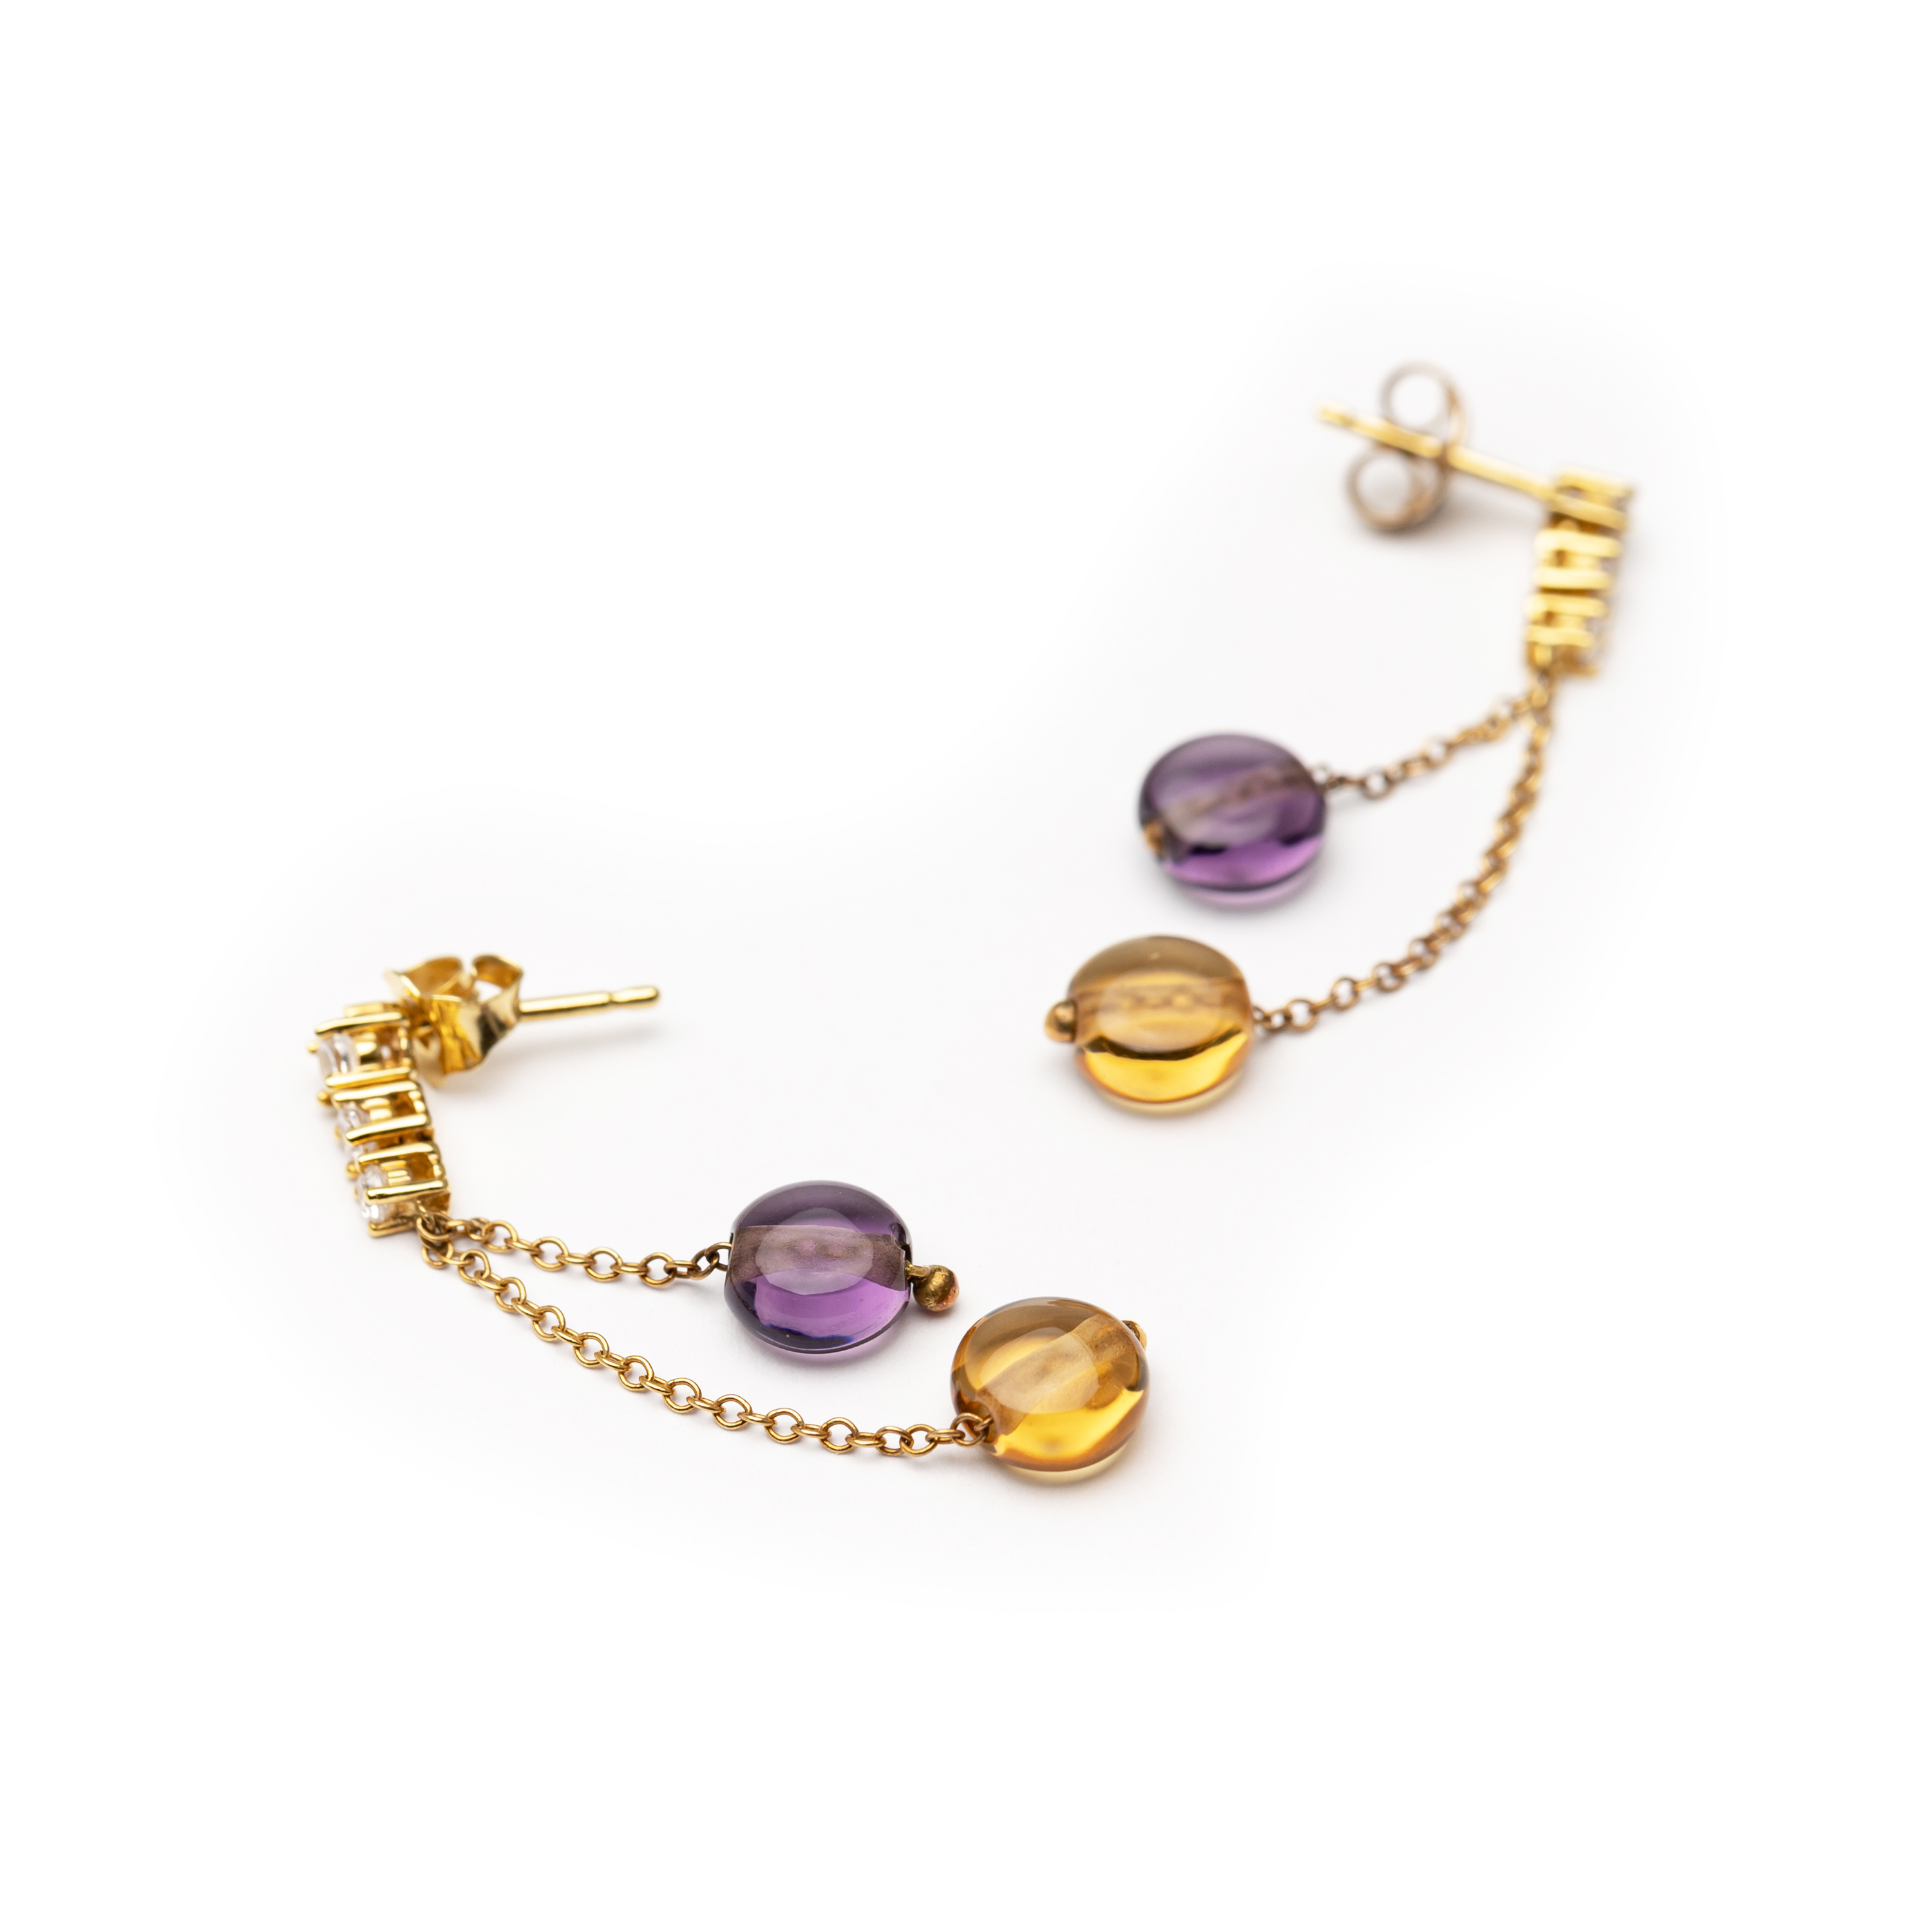 18kt Yellow Gold  Earrings Set With White Zirconia And Quartz Stones.